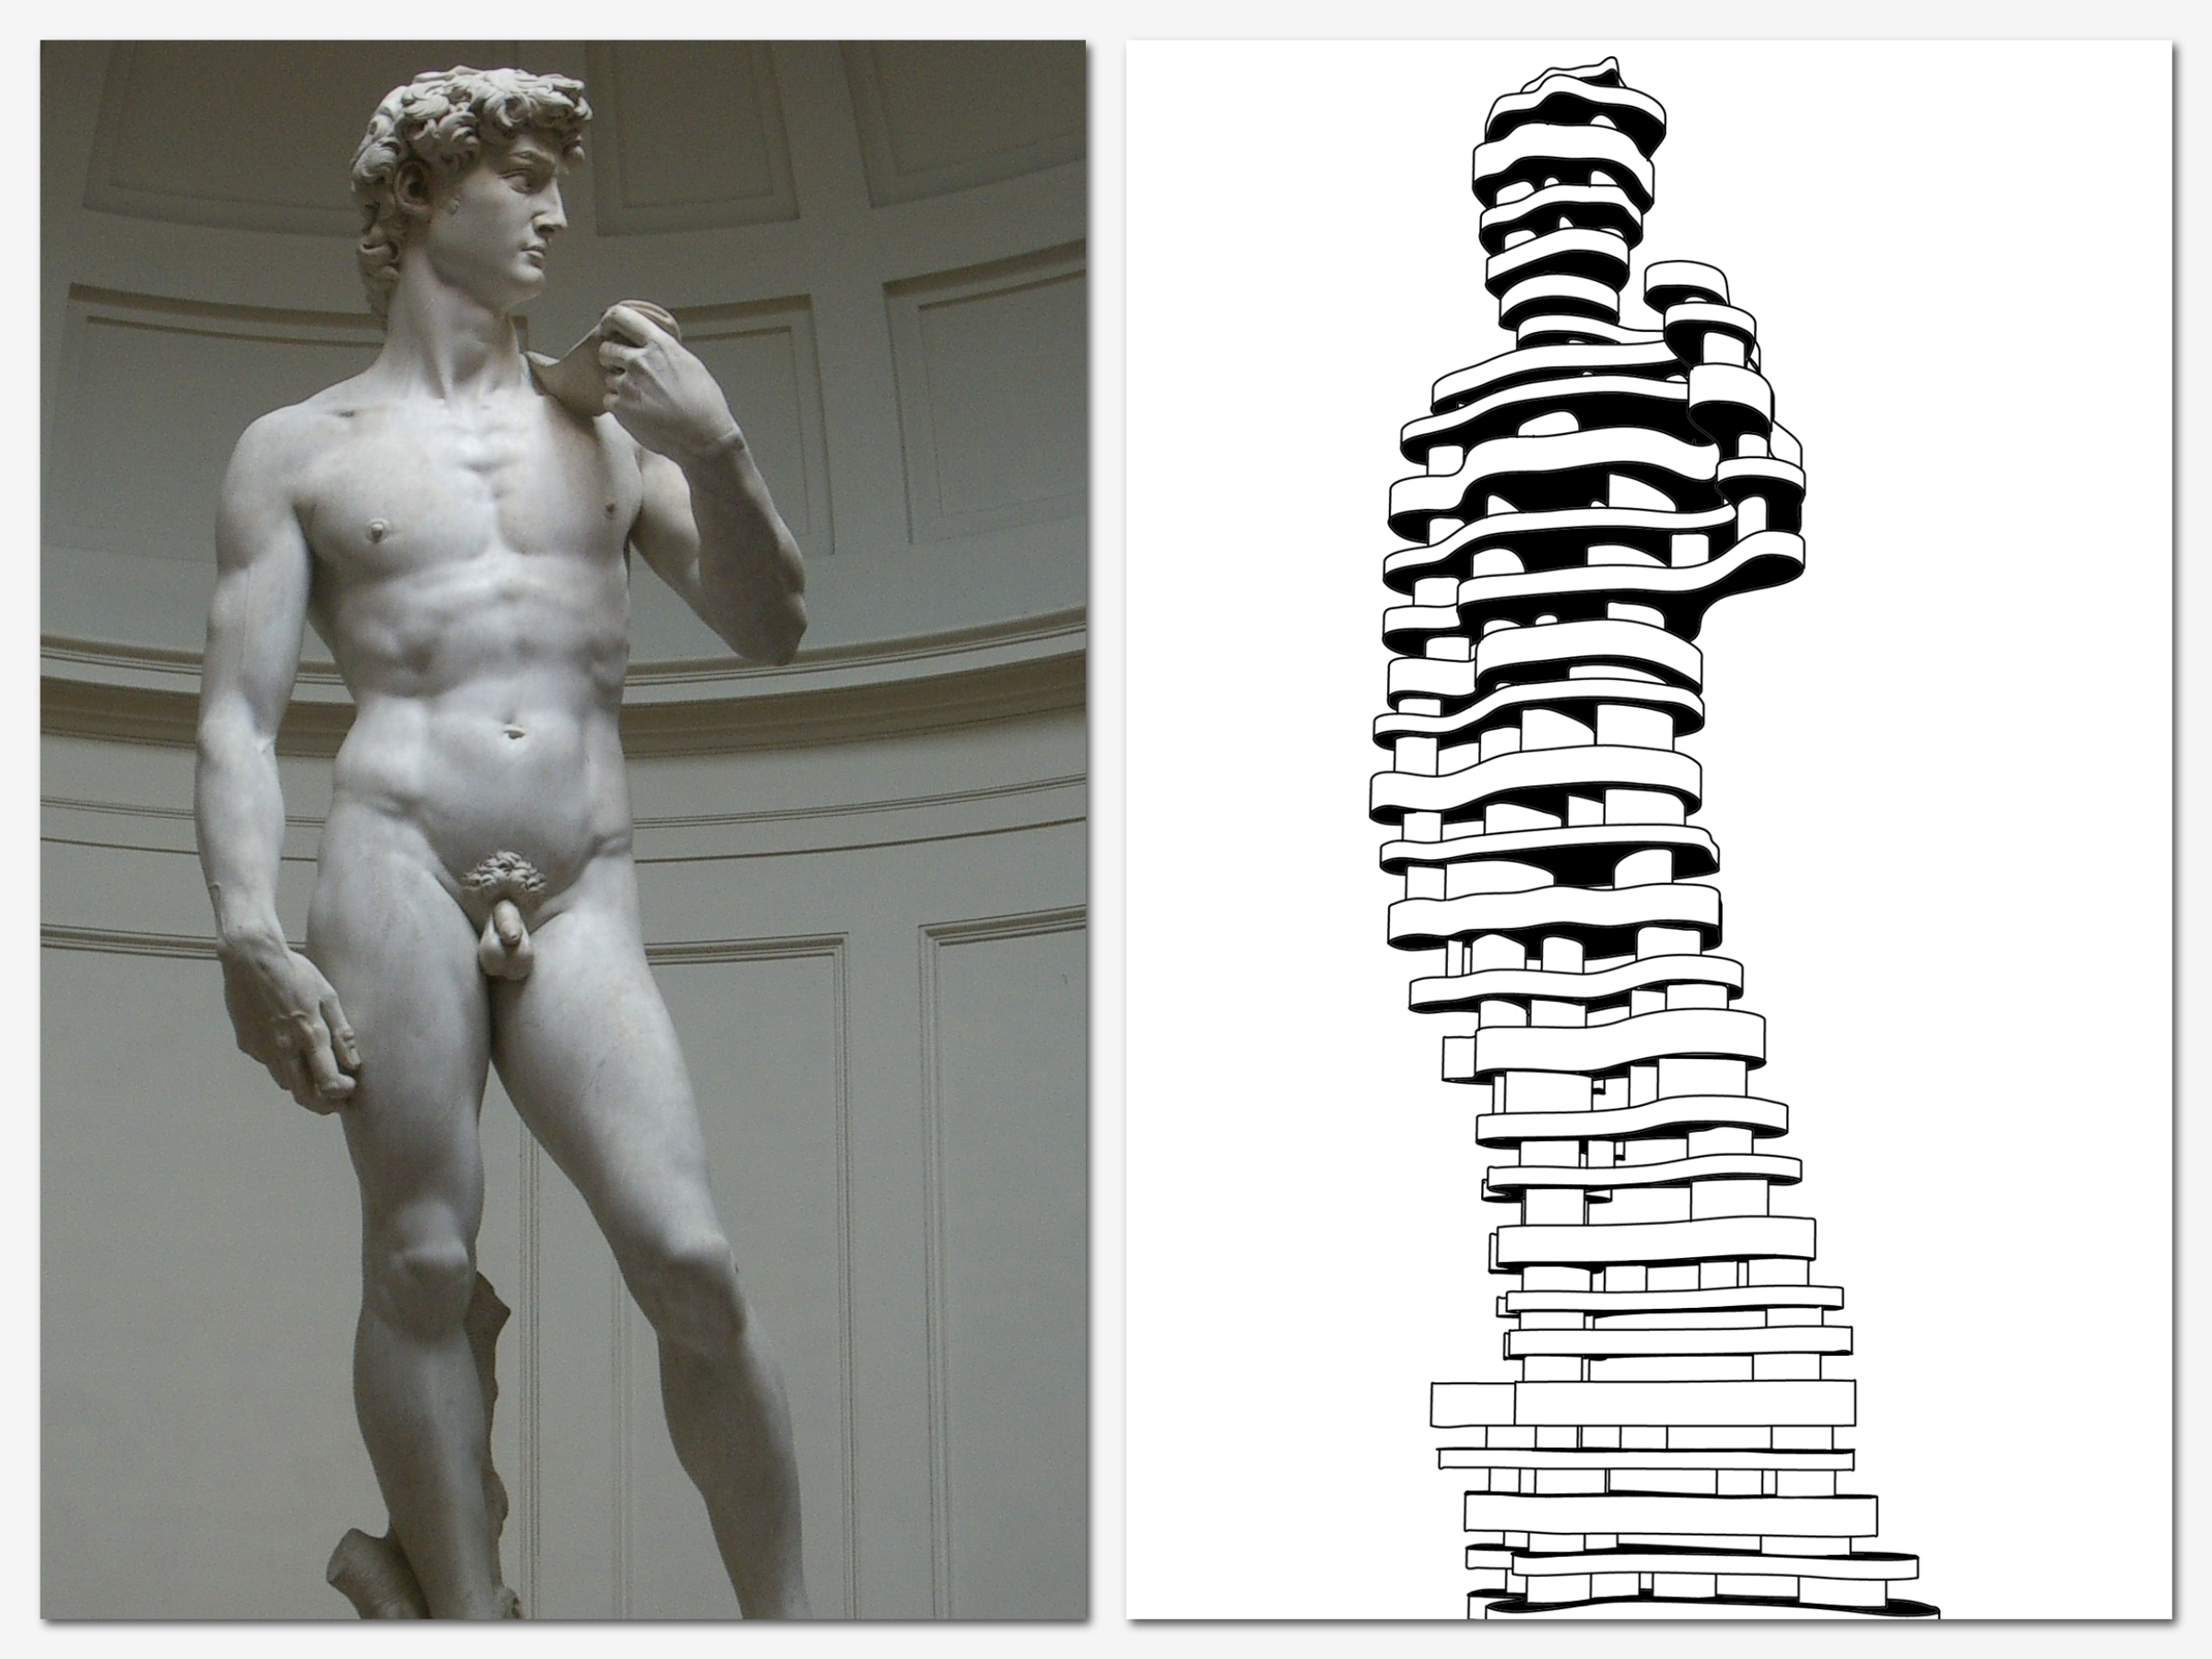 """On the left,Michelangelo's """"David"""" who inspired Antonio's project; on the right is Antonio's sketch of """"Hero""""."""